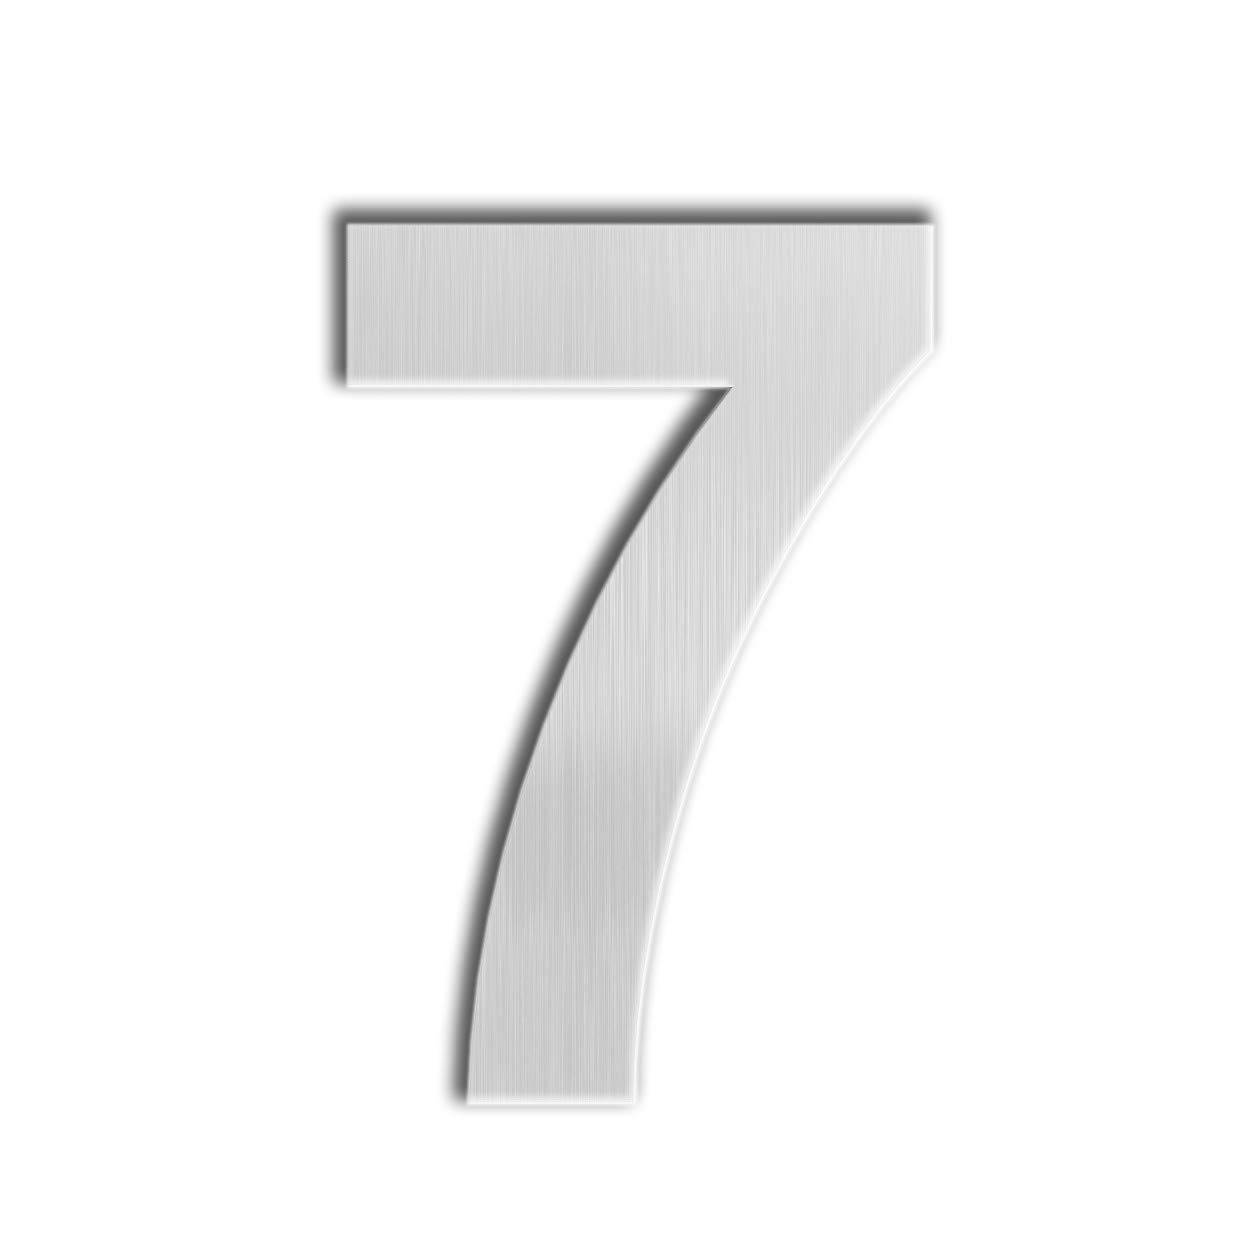 Qt modern house number super large 12 inch brushed stainless steel number 7 seven floating appearance easy to install and made of solid 304